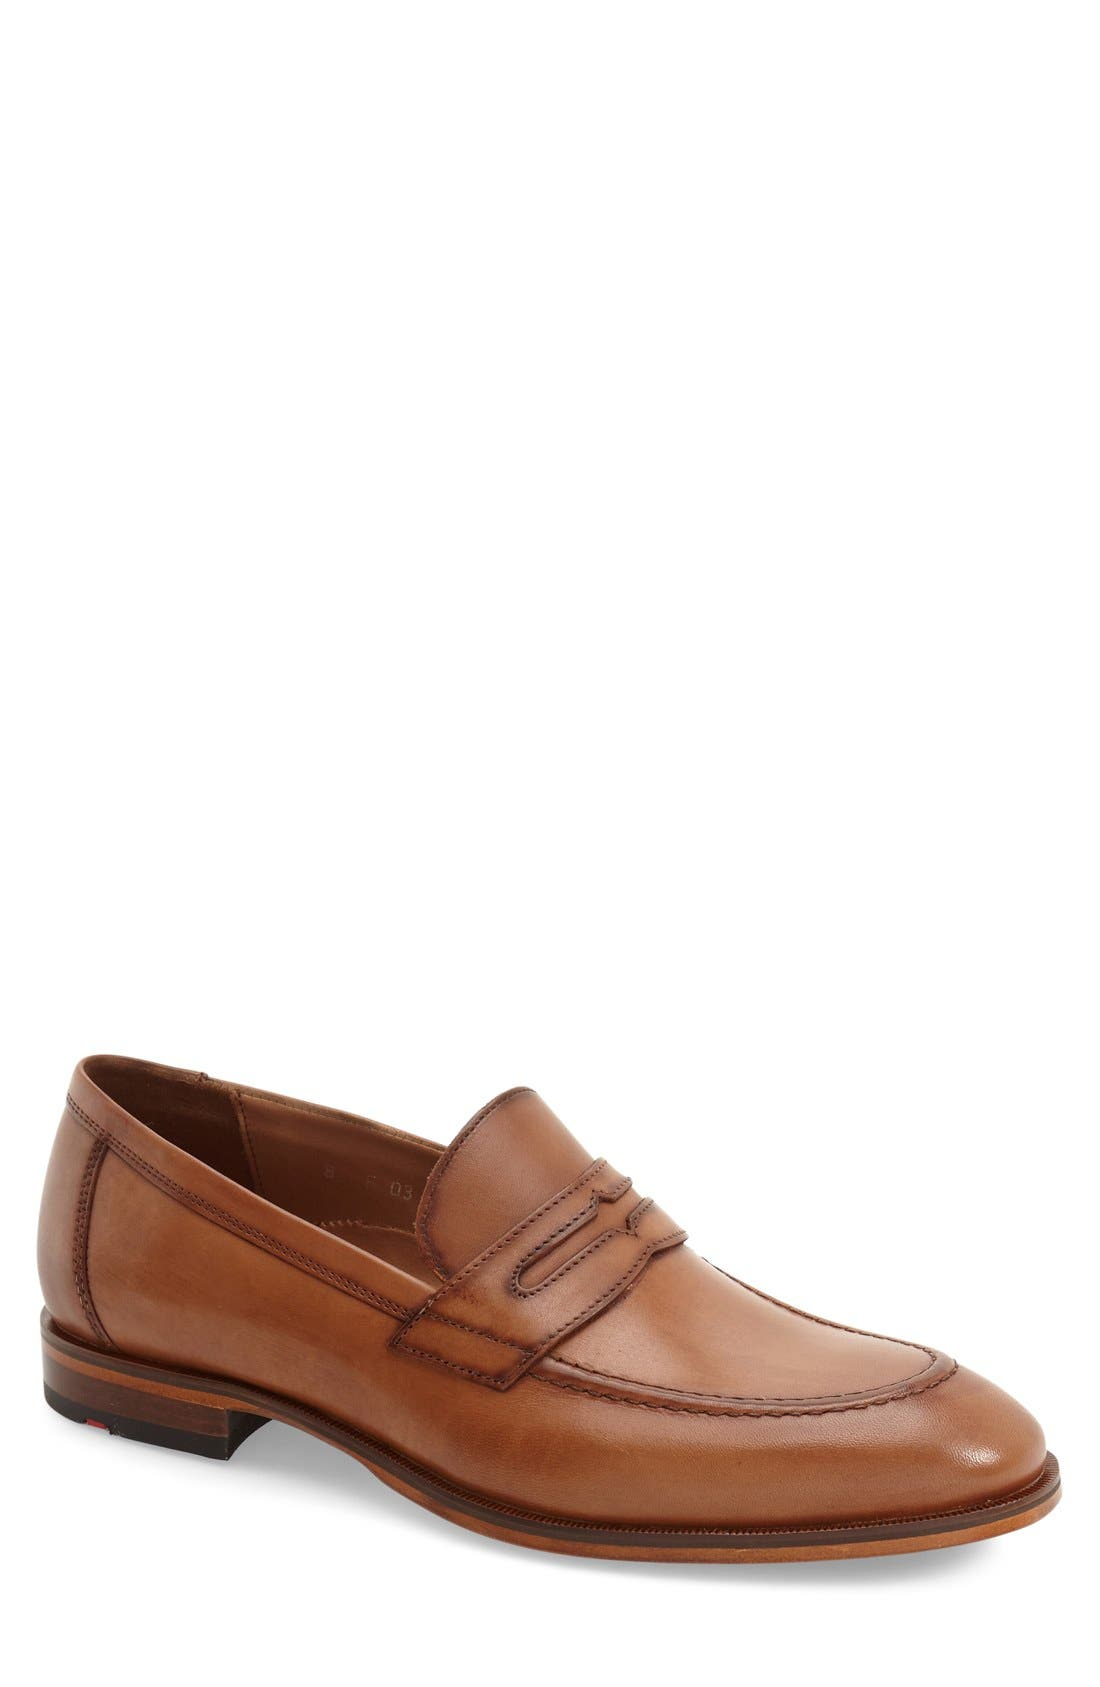 'Pete' Penny Loafer,                             Main thumbnail 1, color,                             COGNAC